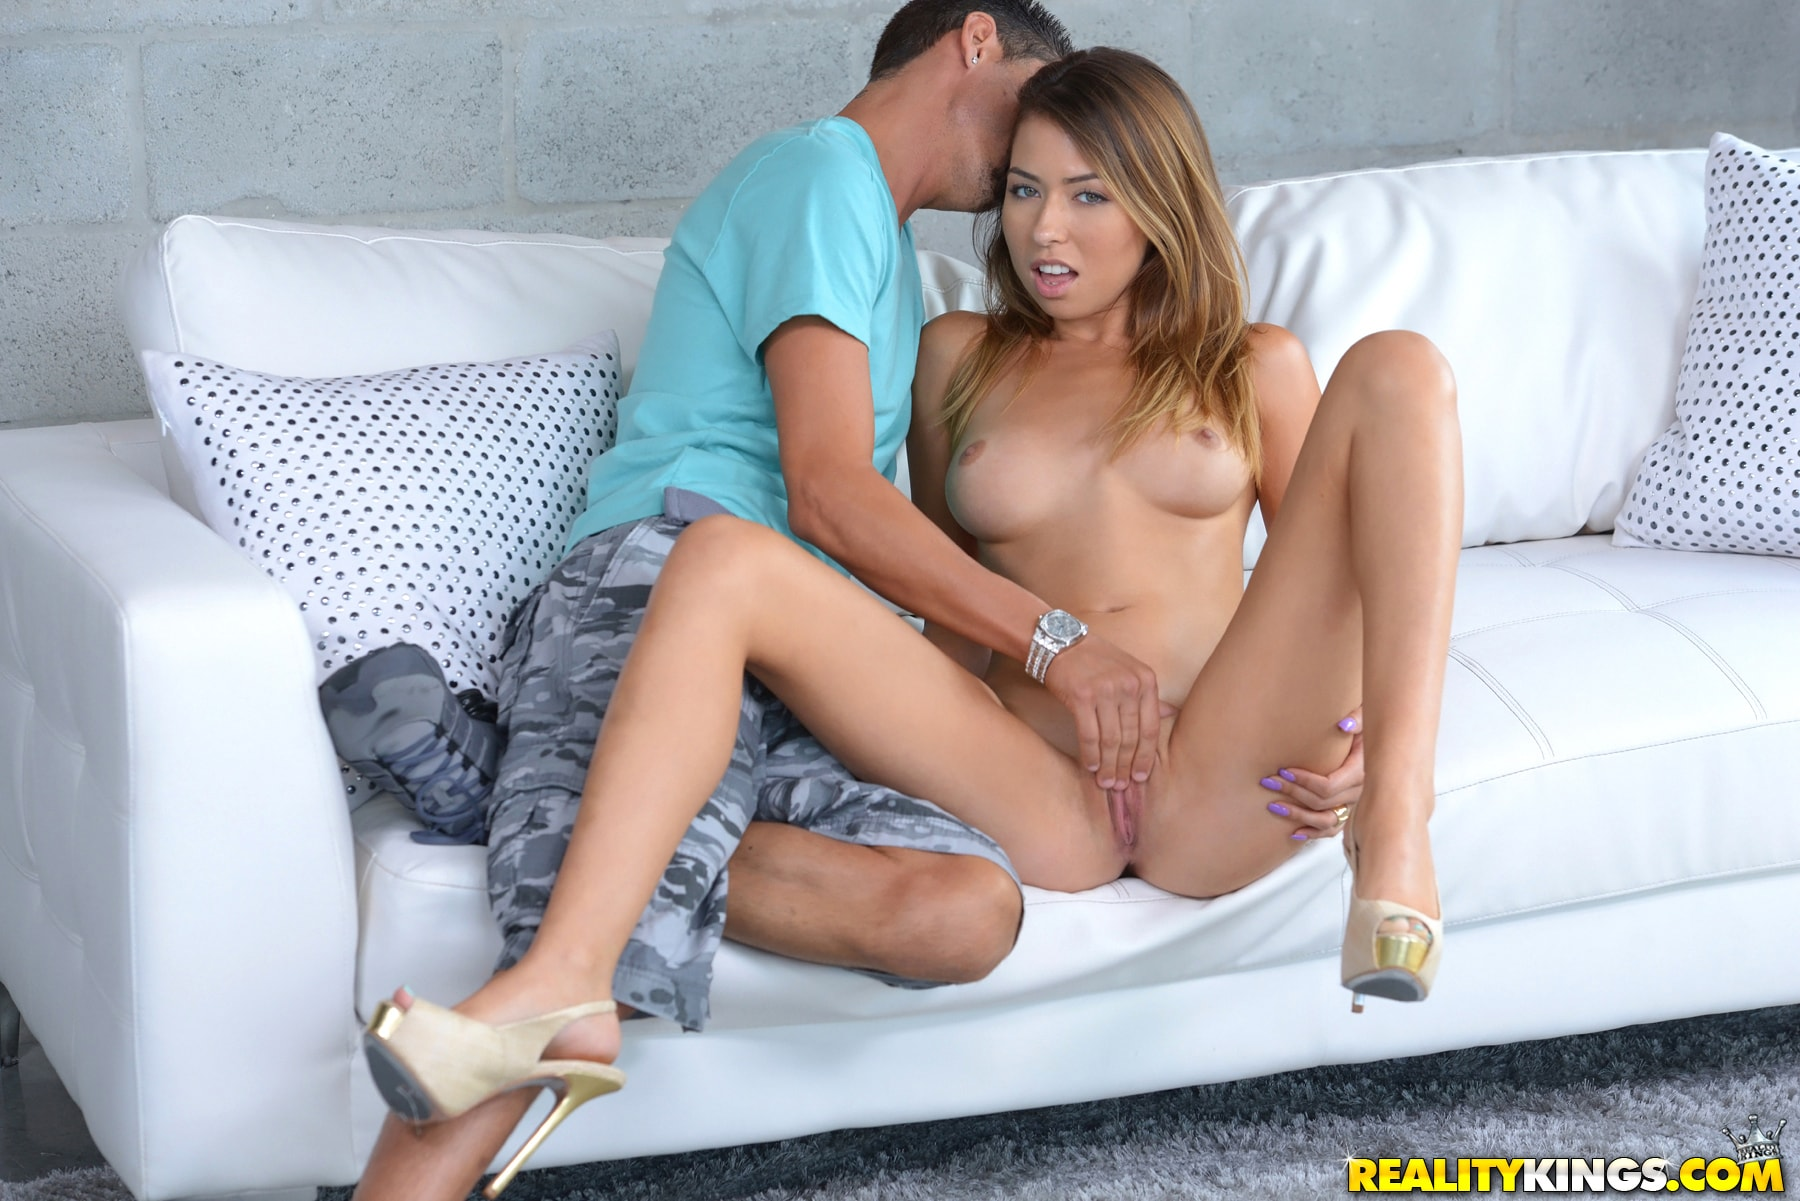 Reality Kings 'Something new' starring Melissa Moore (Photo 154)